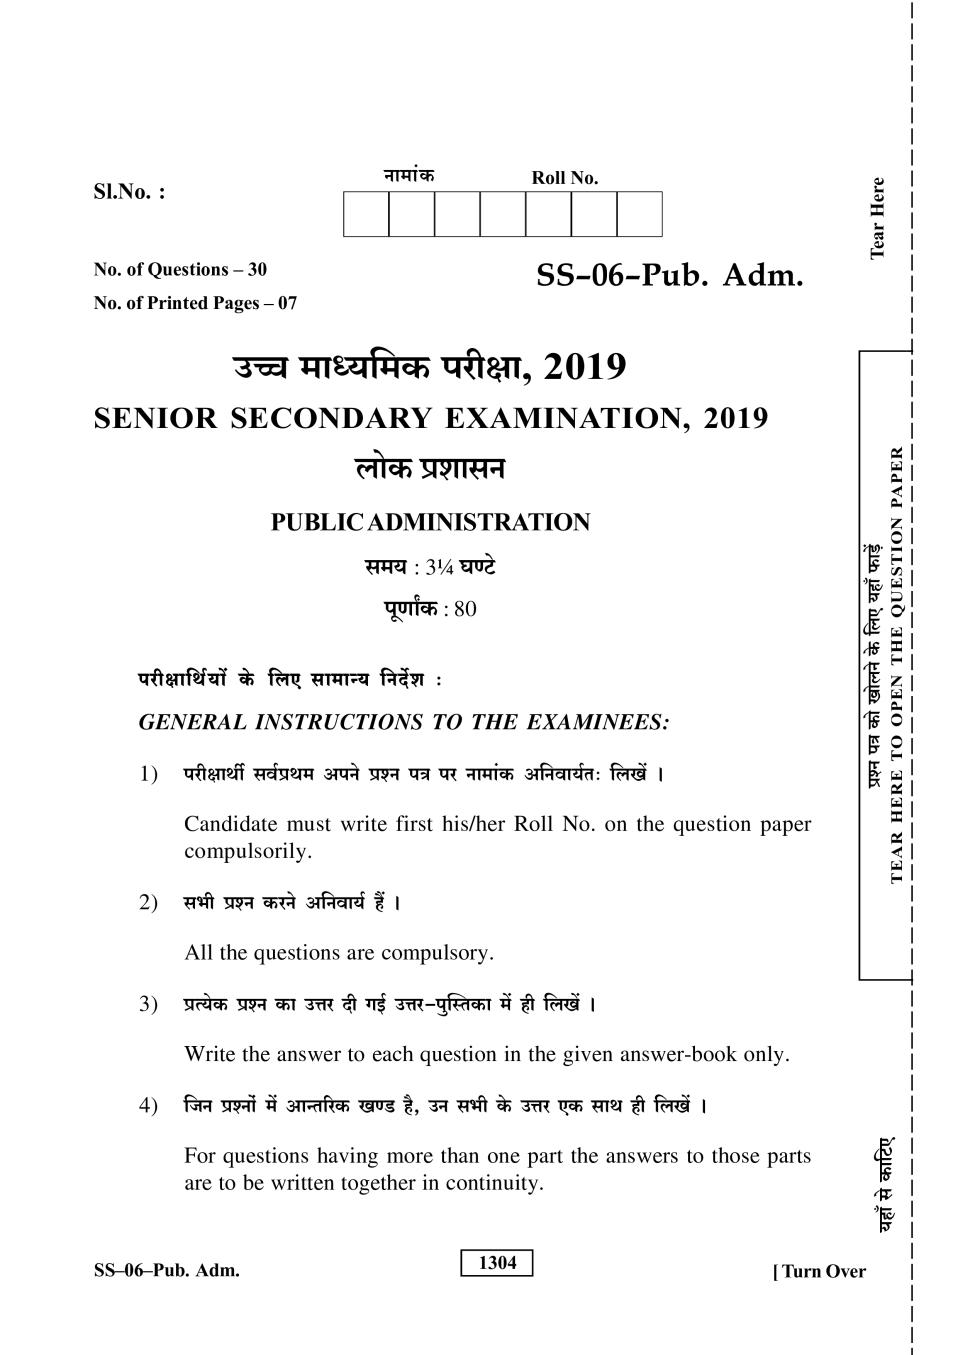 Rajasthan Board Sr. Secondary Public Administration Question Paper